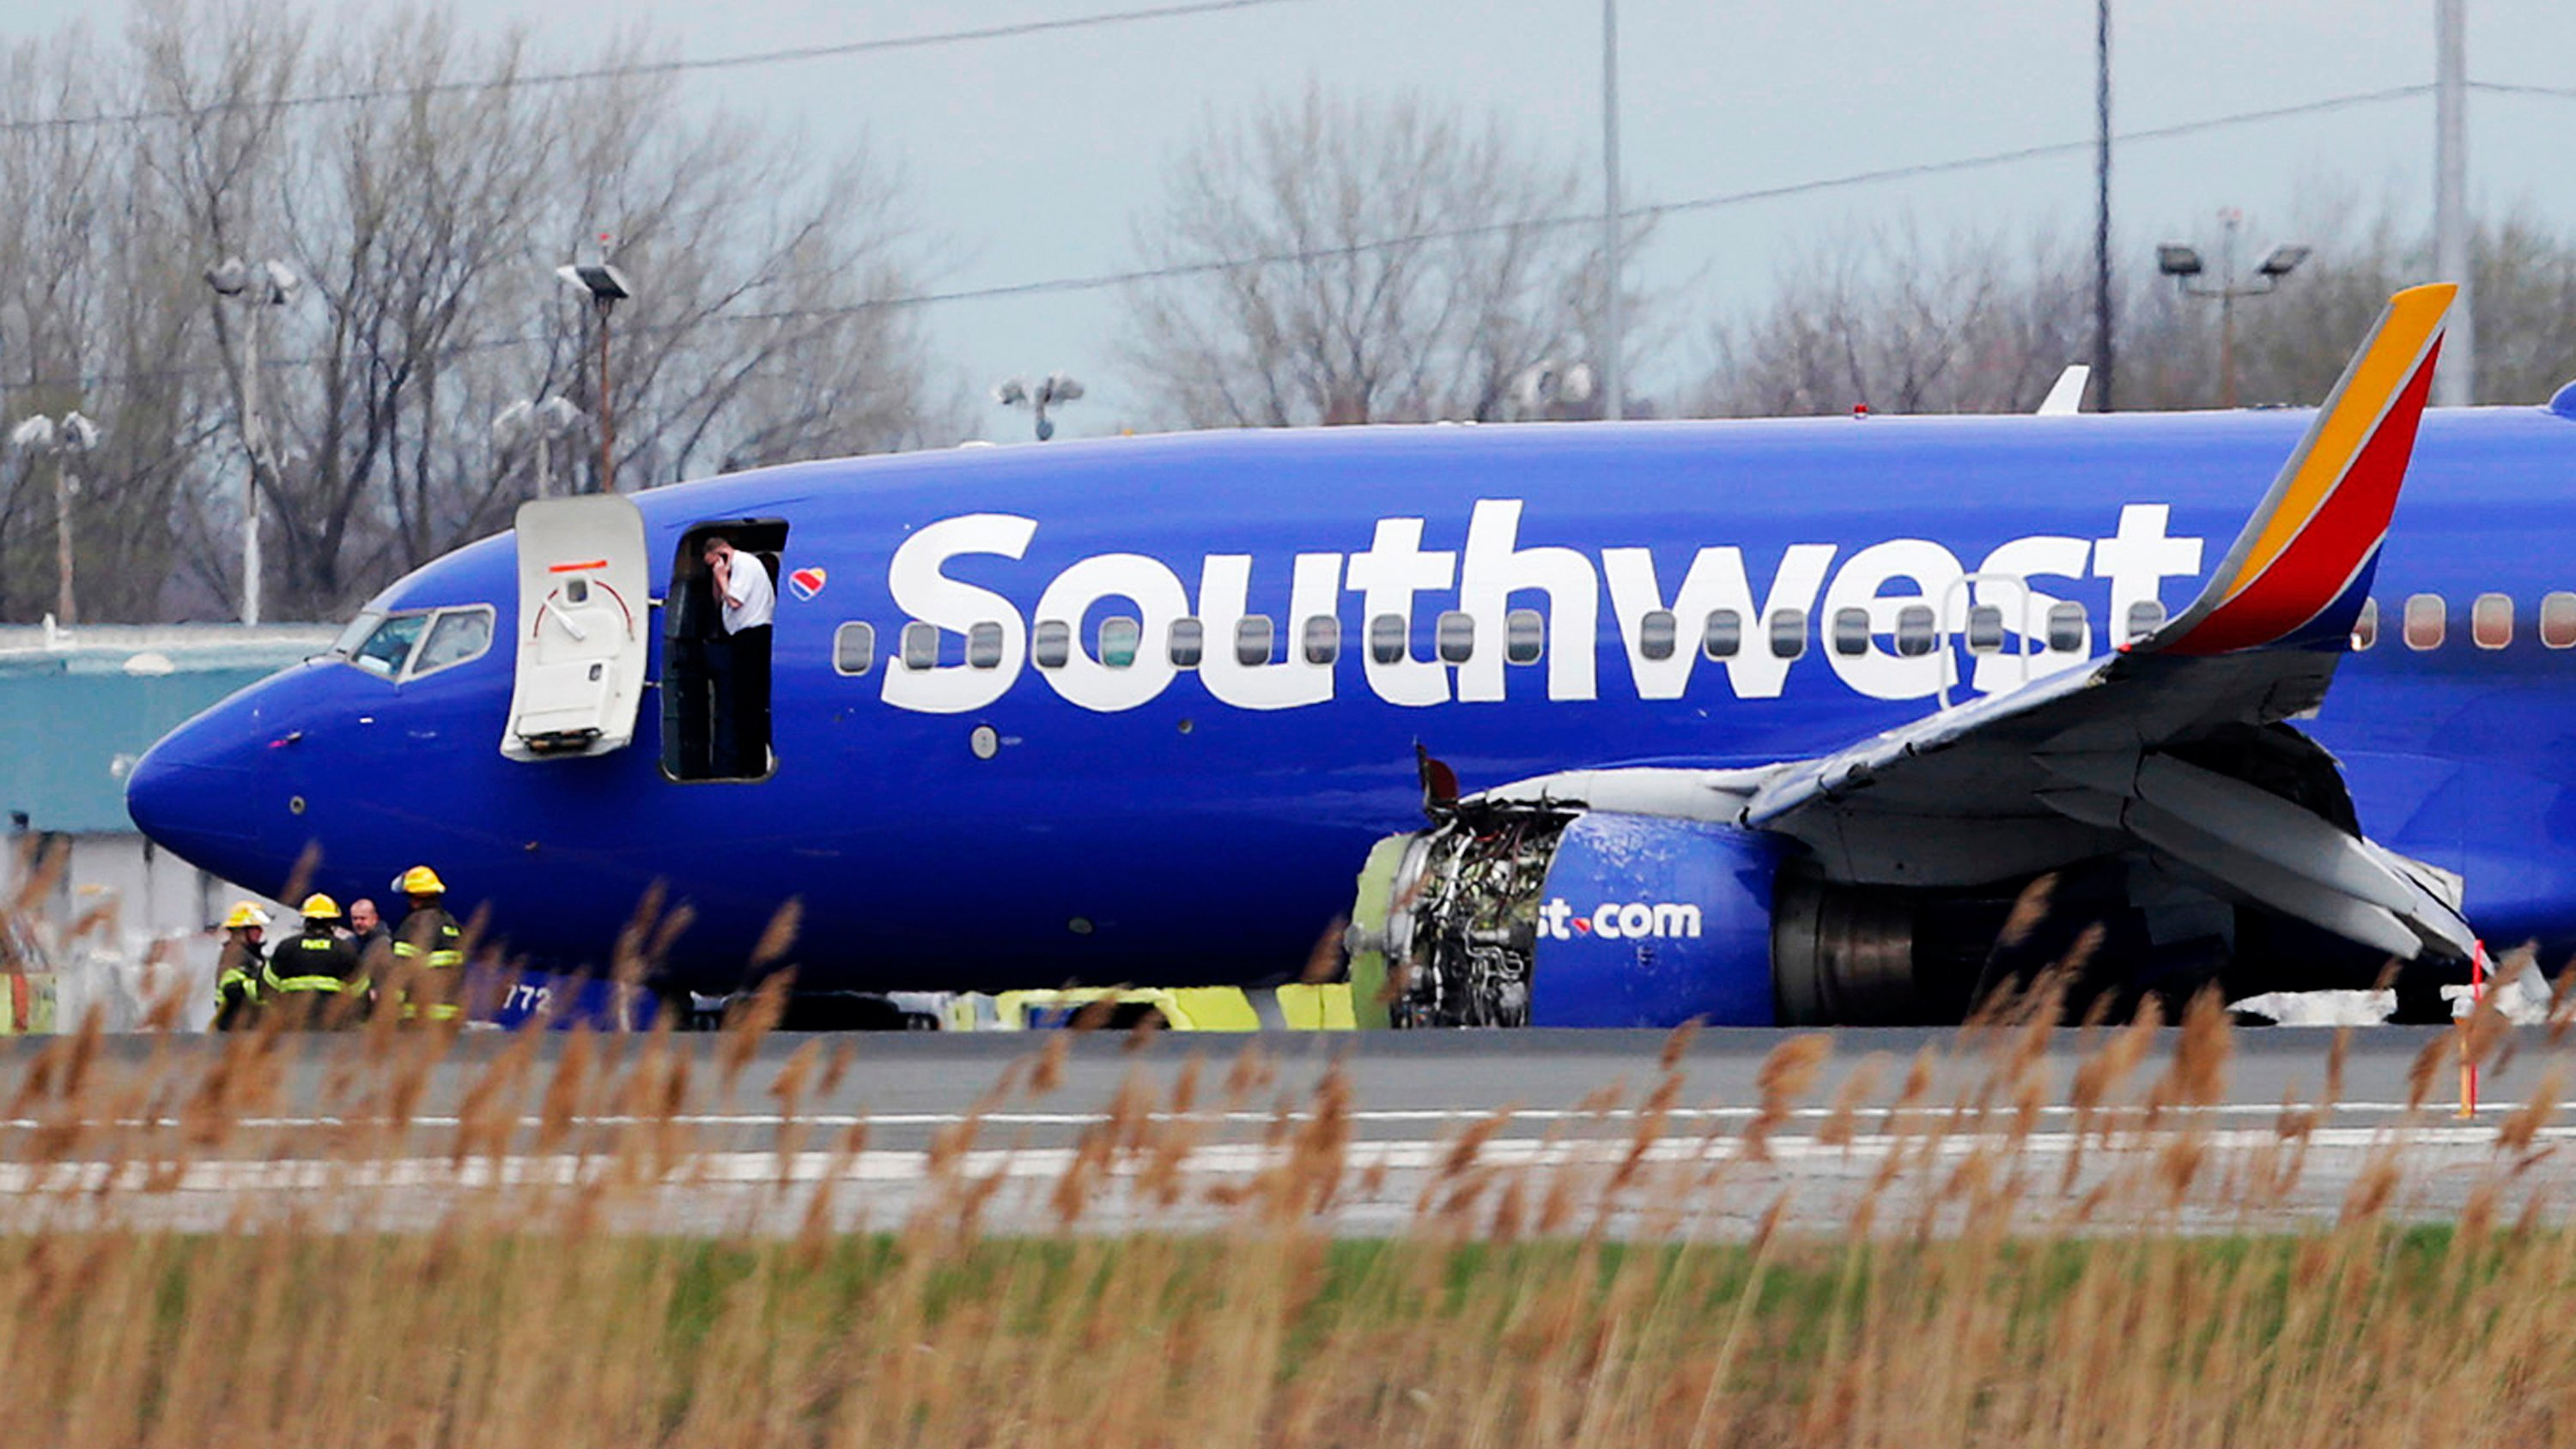 FAA Launching Investigation After Death on Southwest Flight 1380